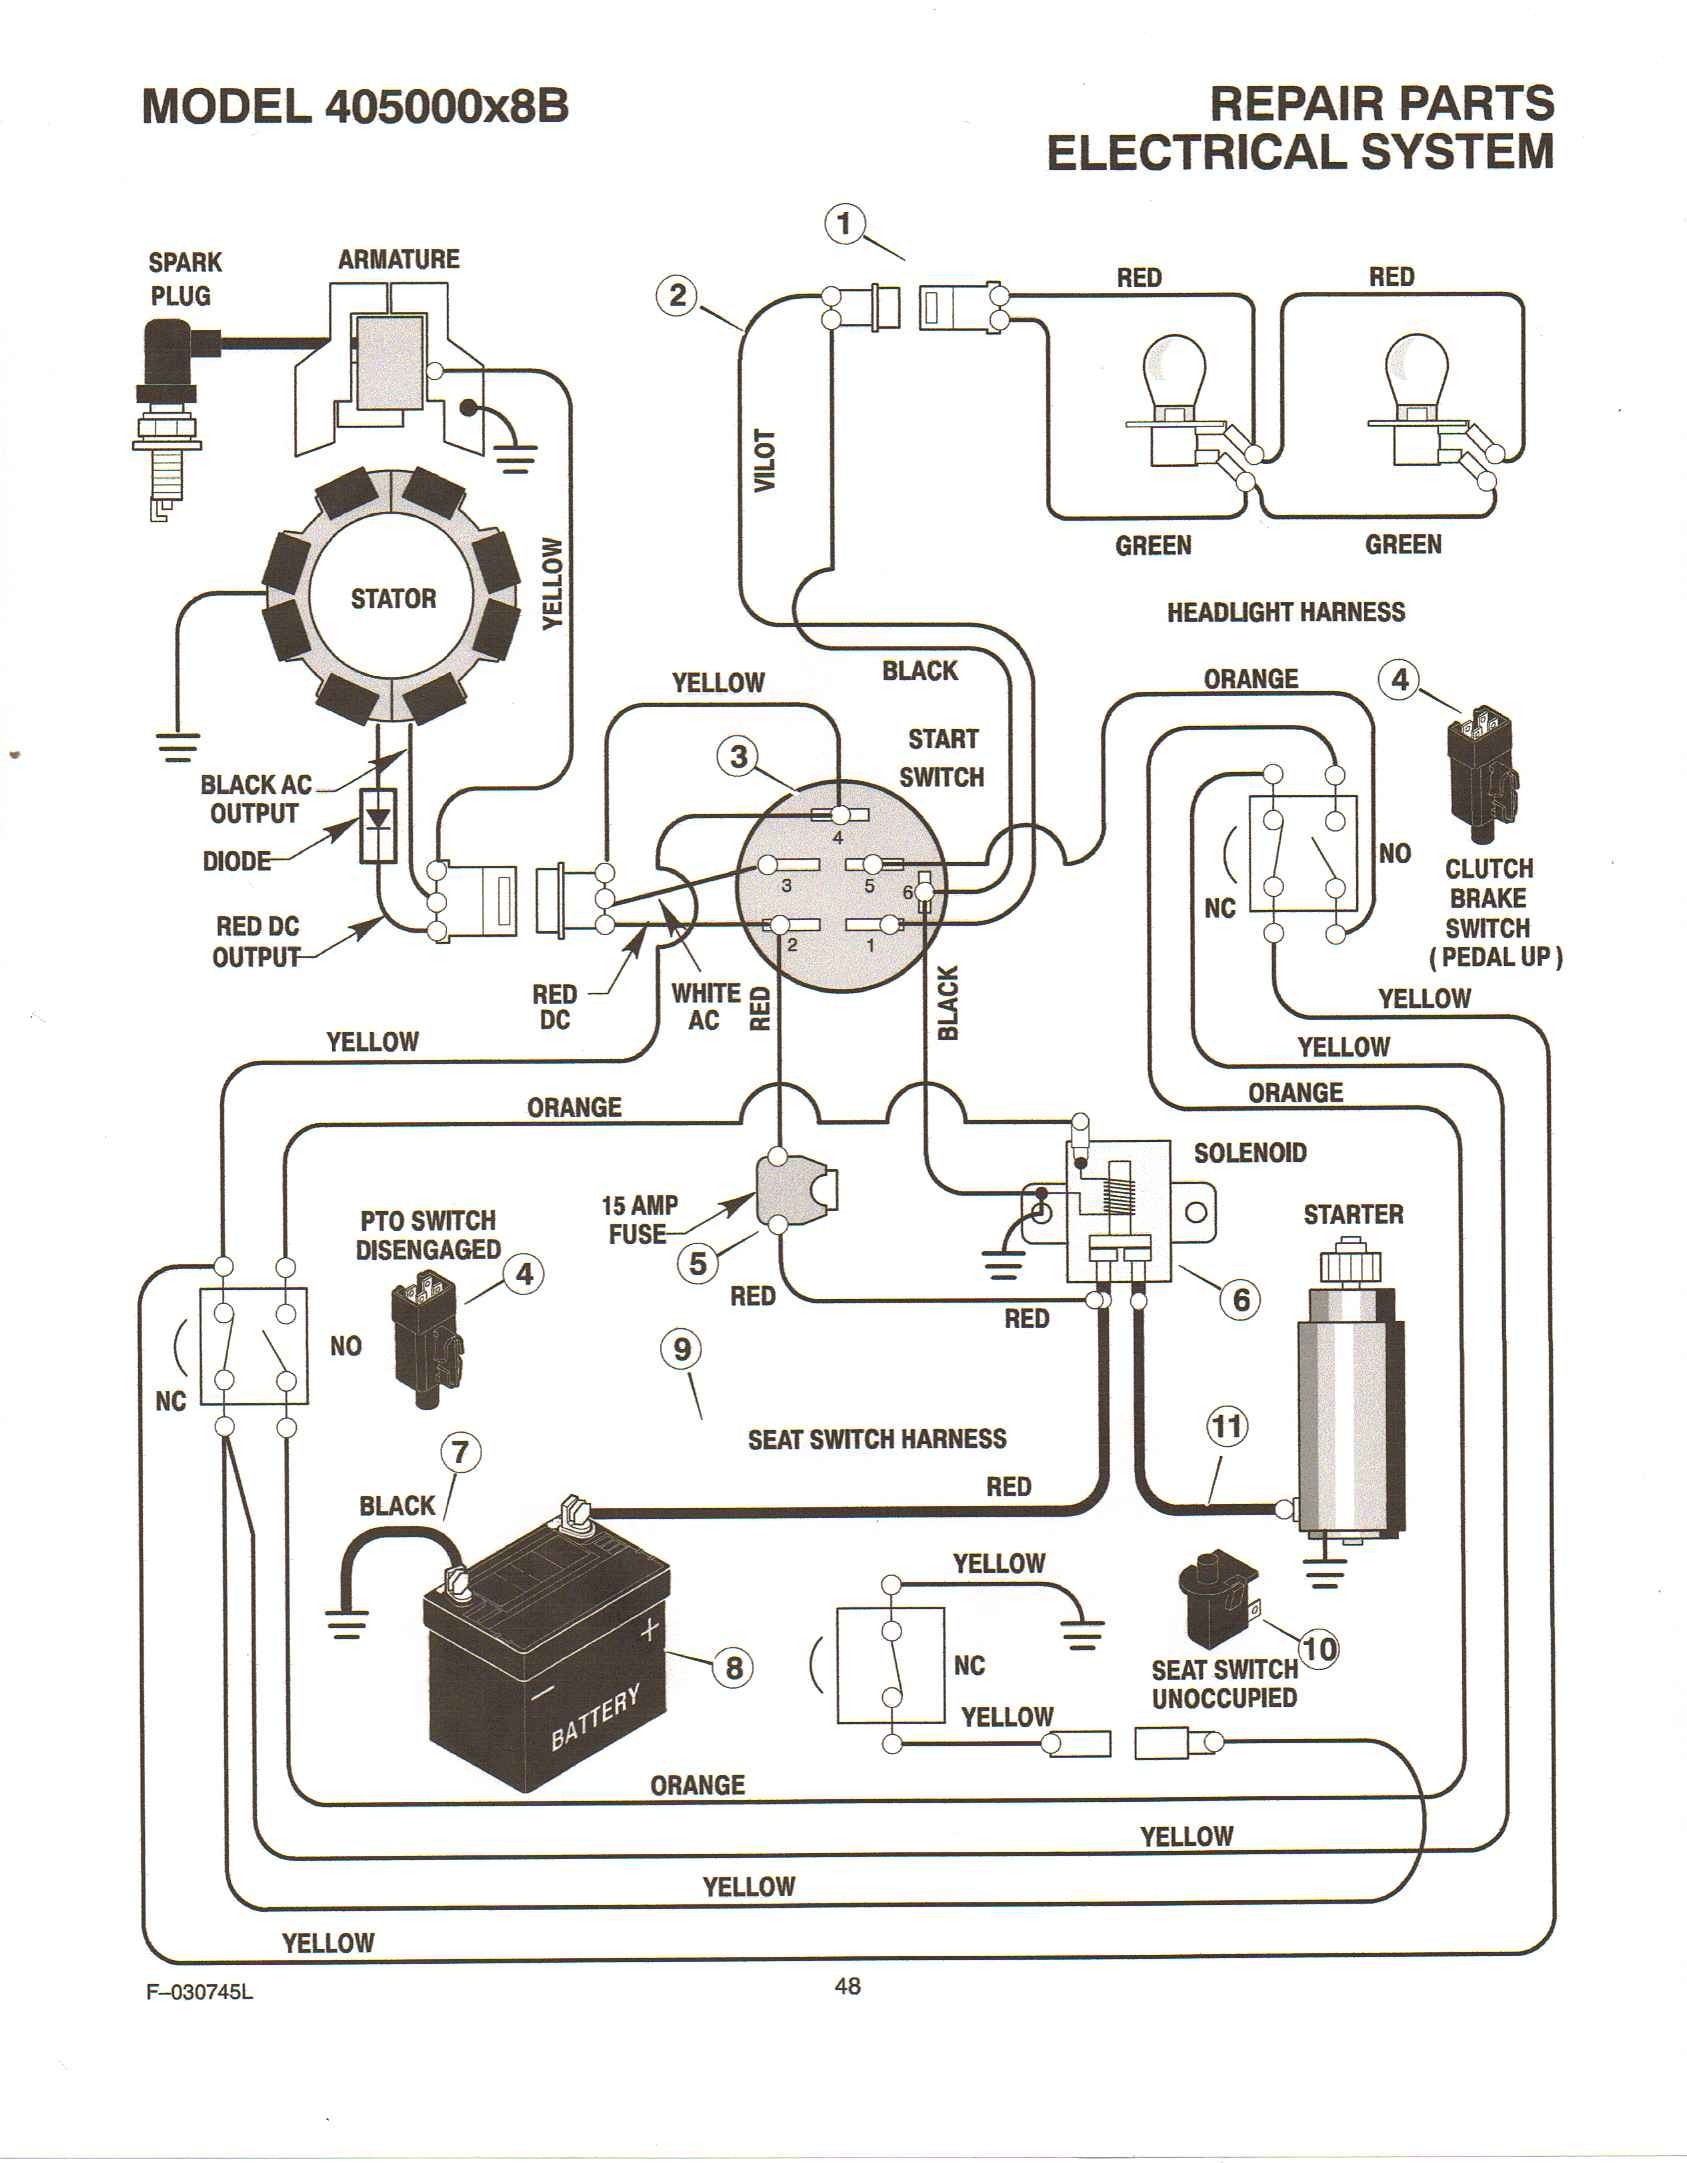 Wiring Diagram For Kohler 25 Hp Engine